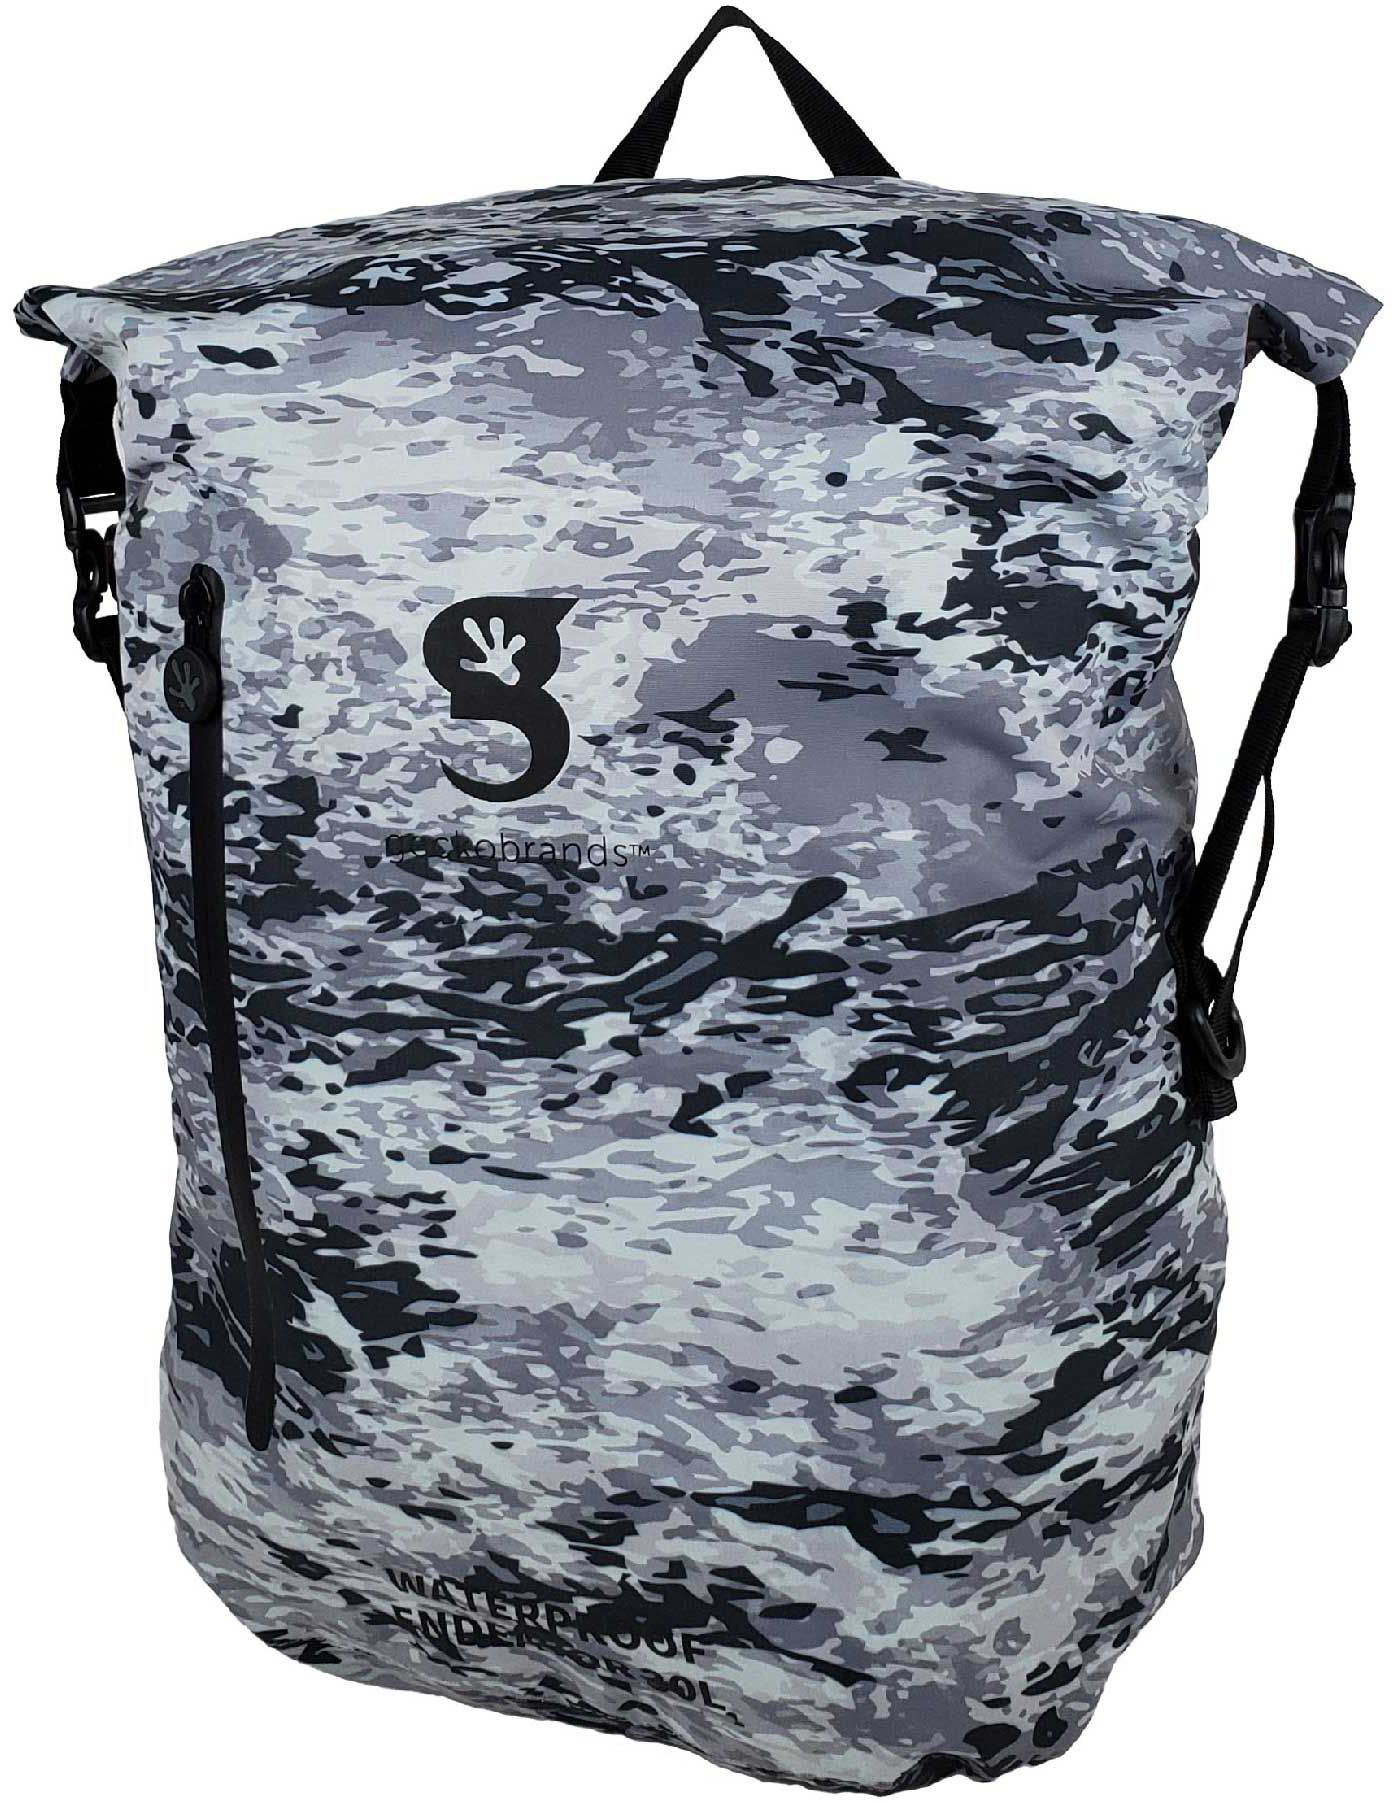 geckobrands Endeavor Waterproof Backpack